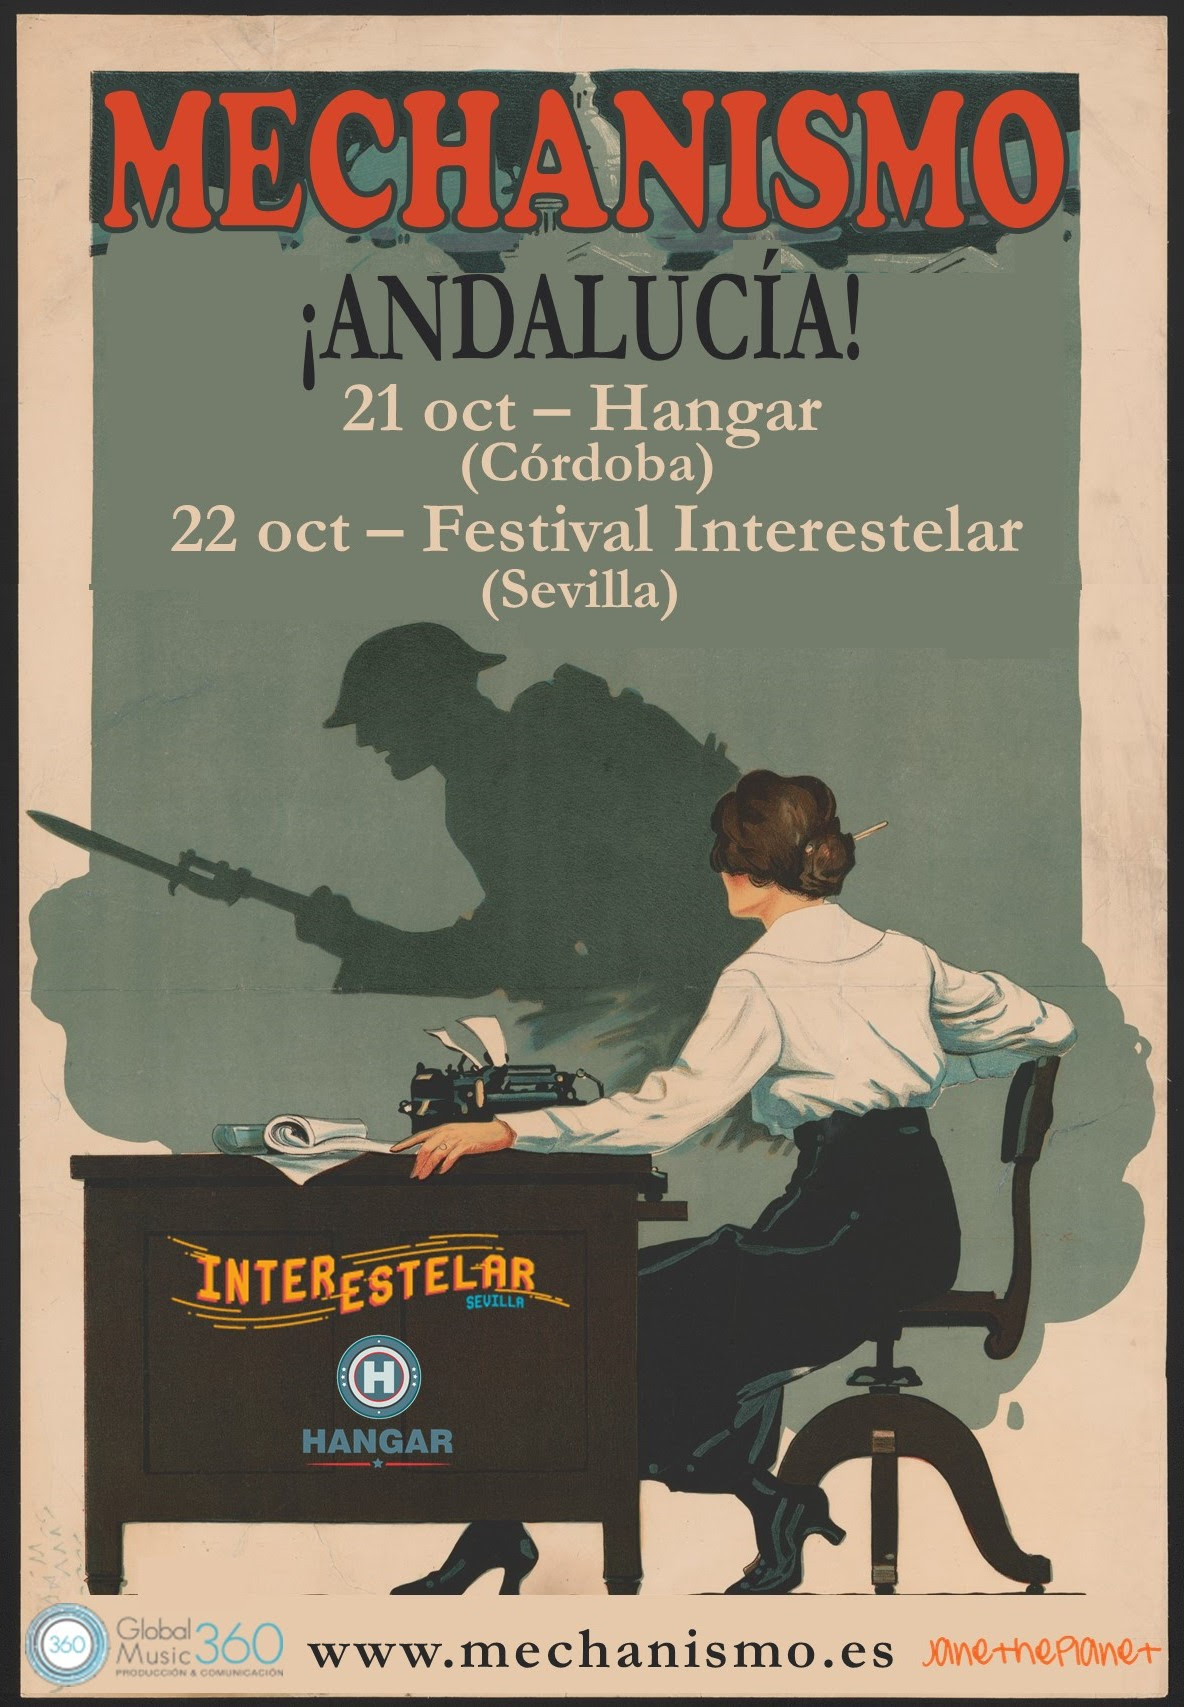 Conciertos de Mechanismo en Andalucia.